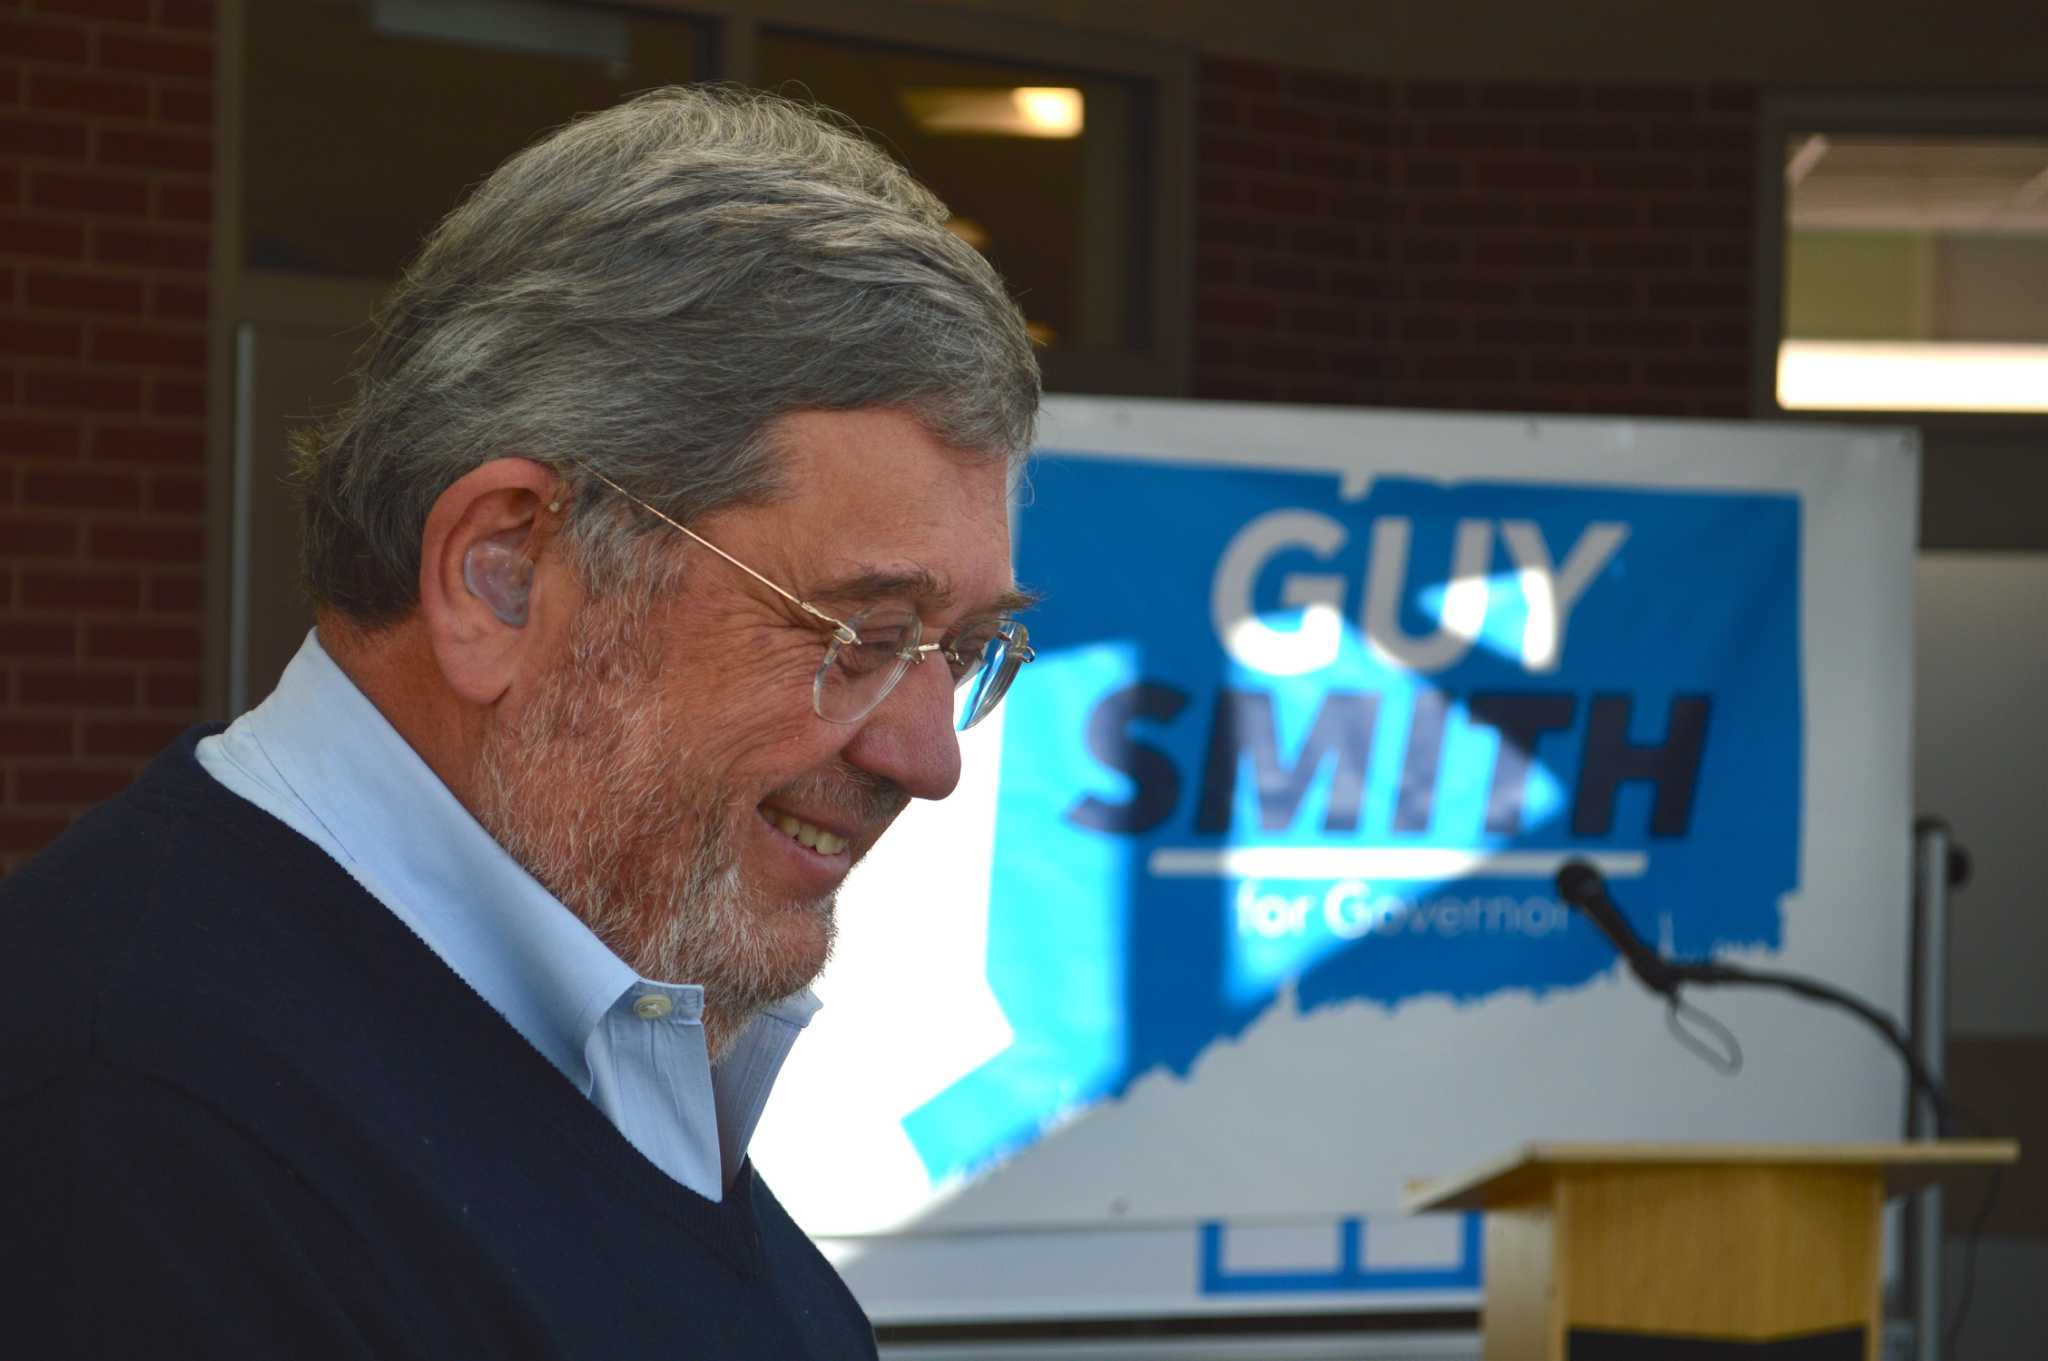 candidate guy smith talks - HD 2048×1361